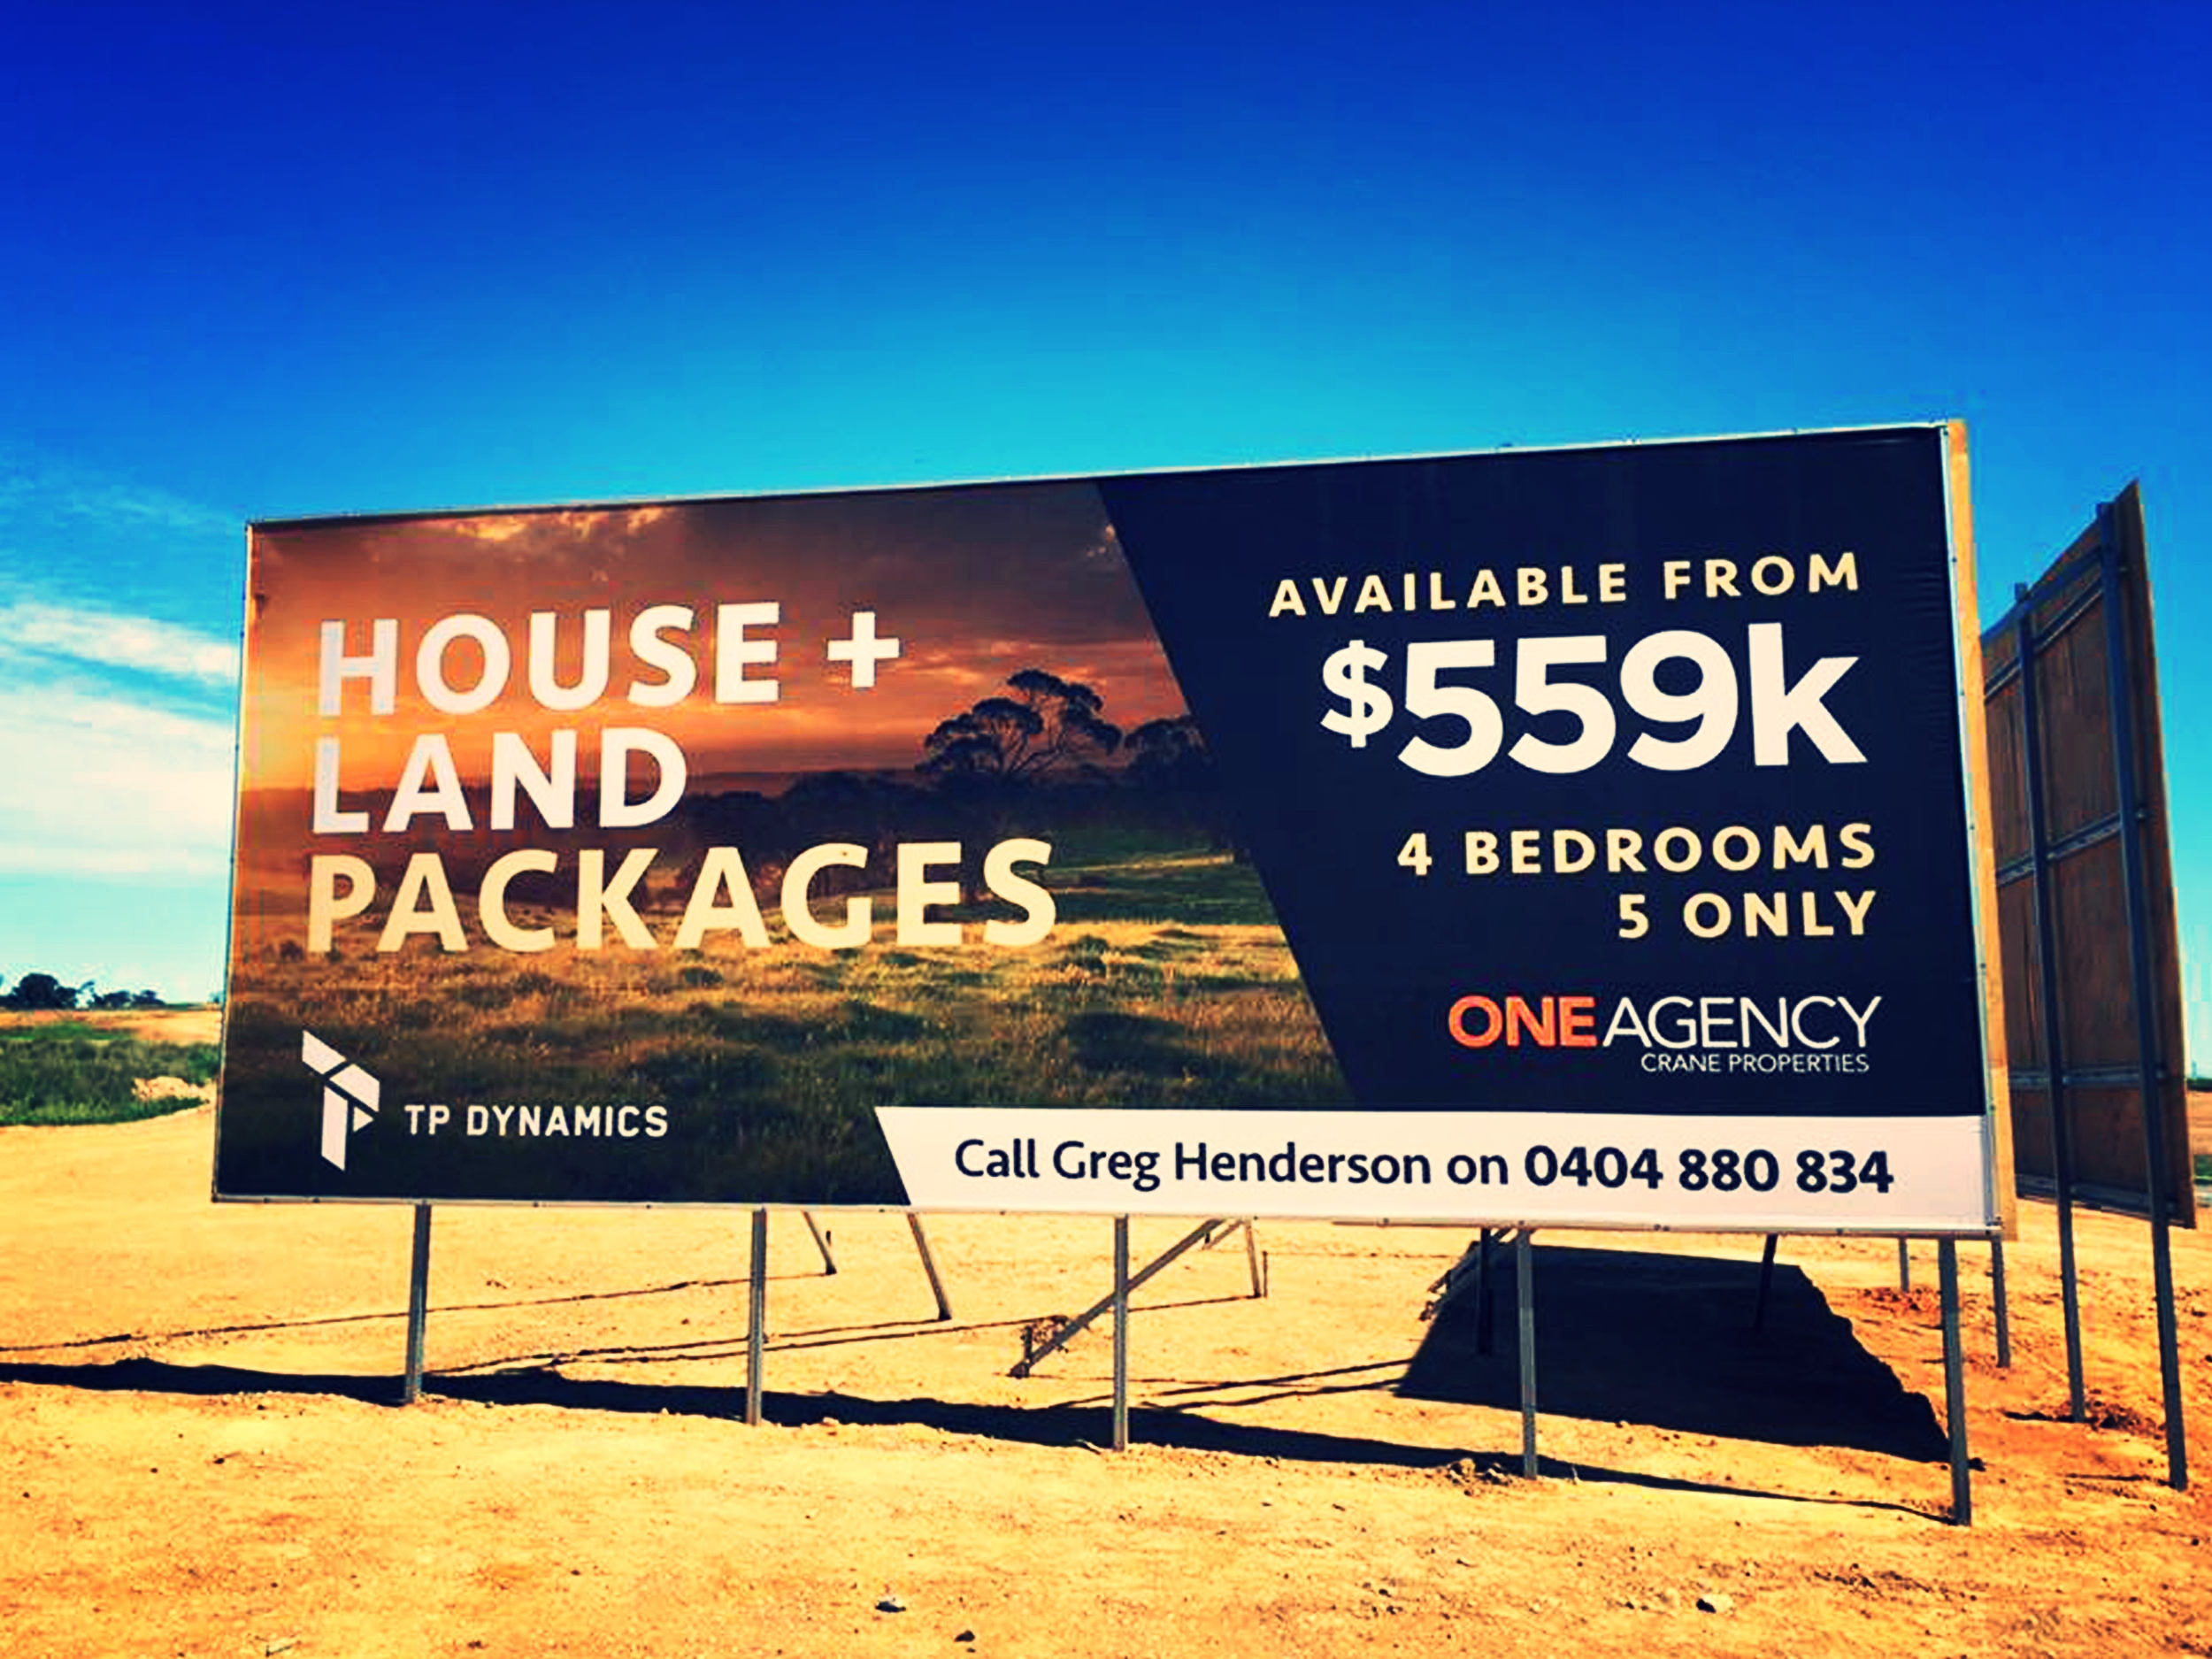 One Agency Canberra